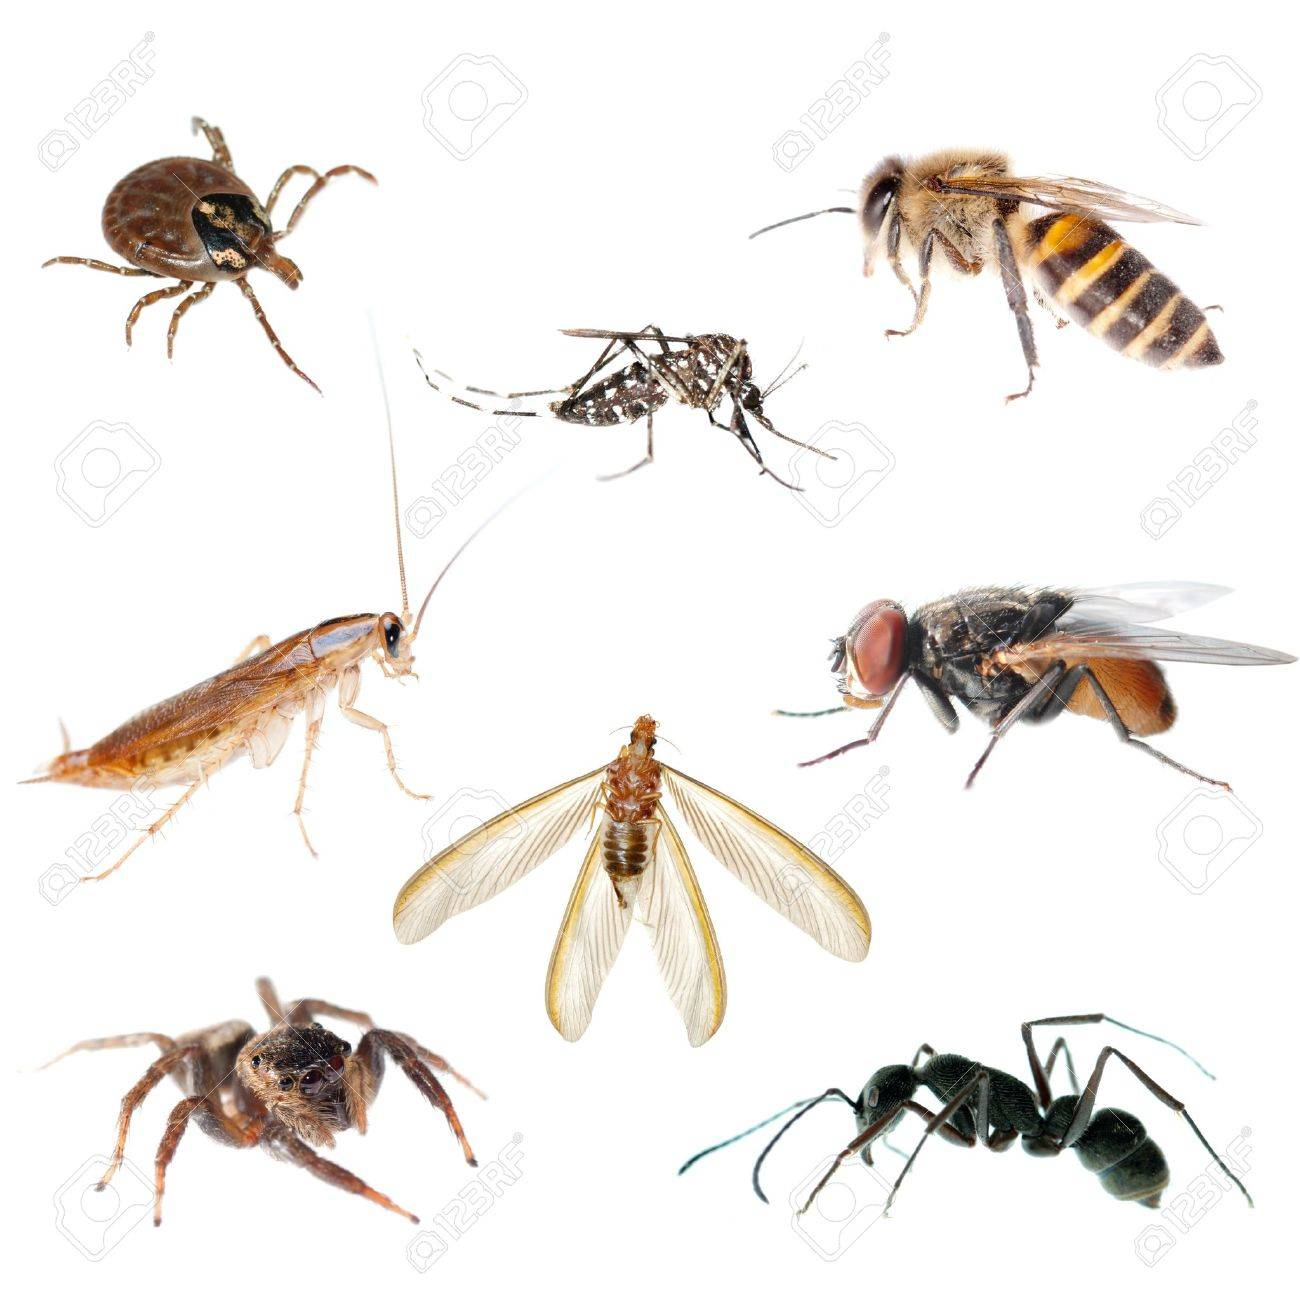 animal insect bug set collection Stock Photo - 9457646